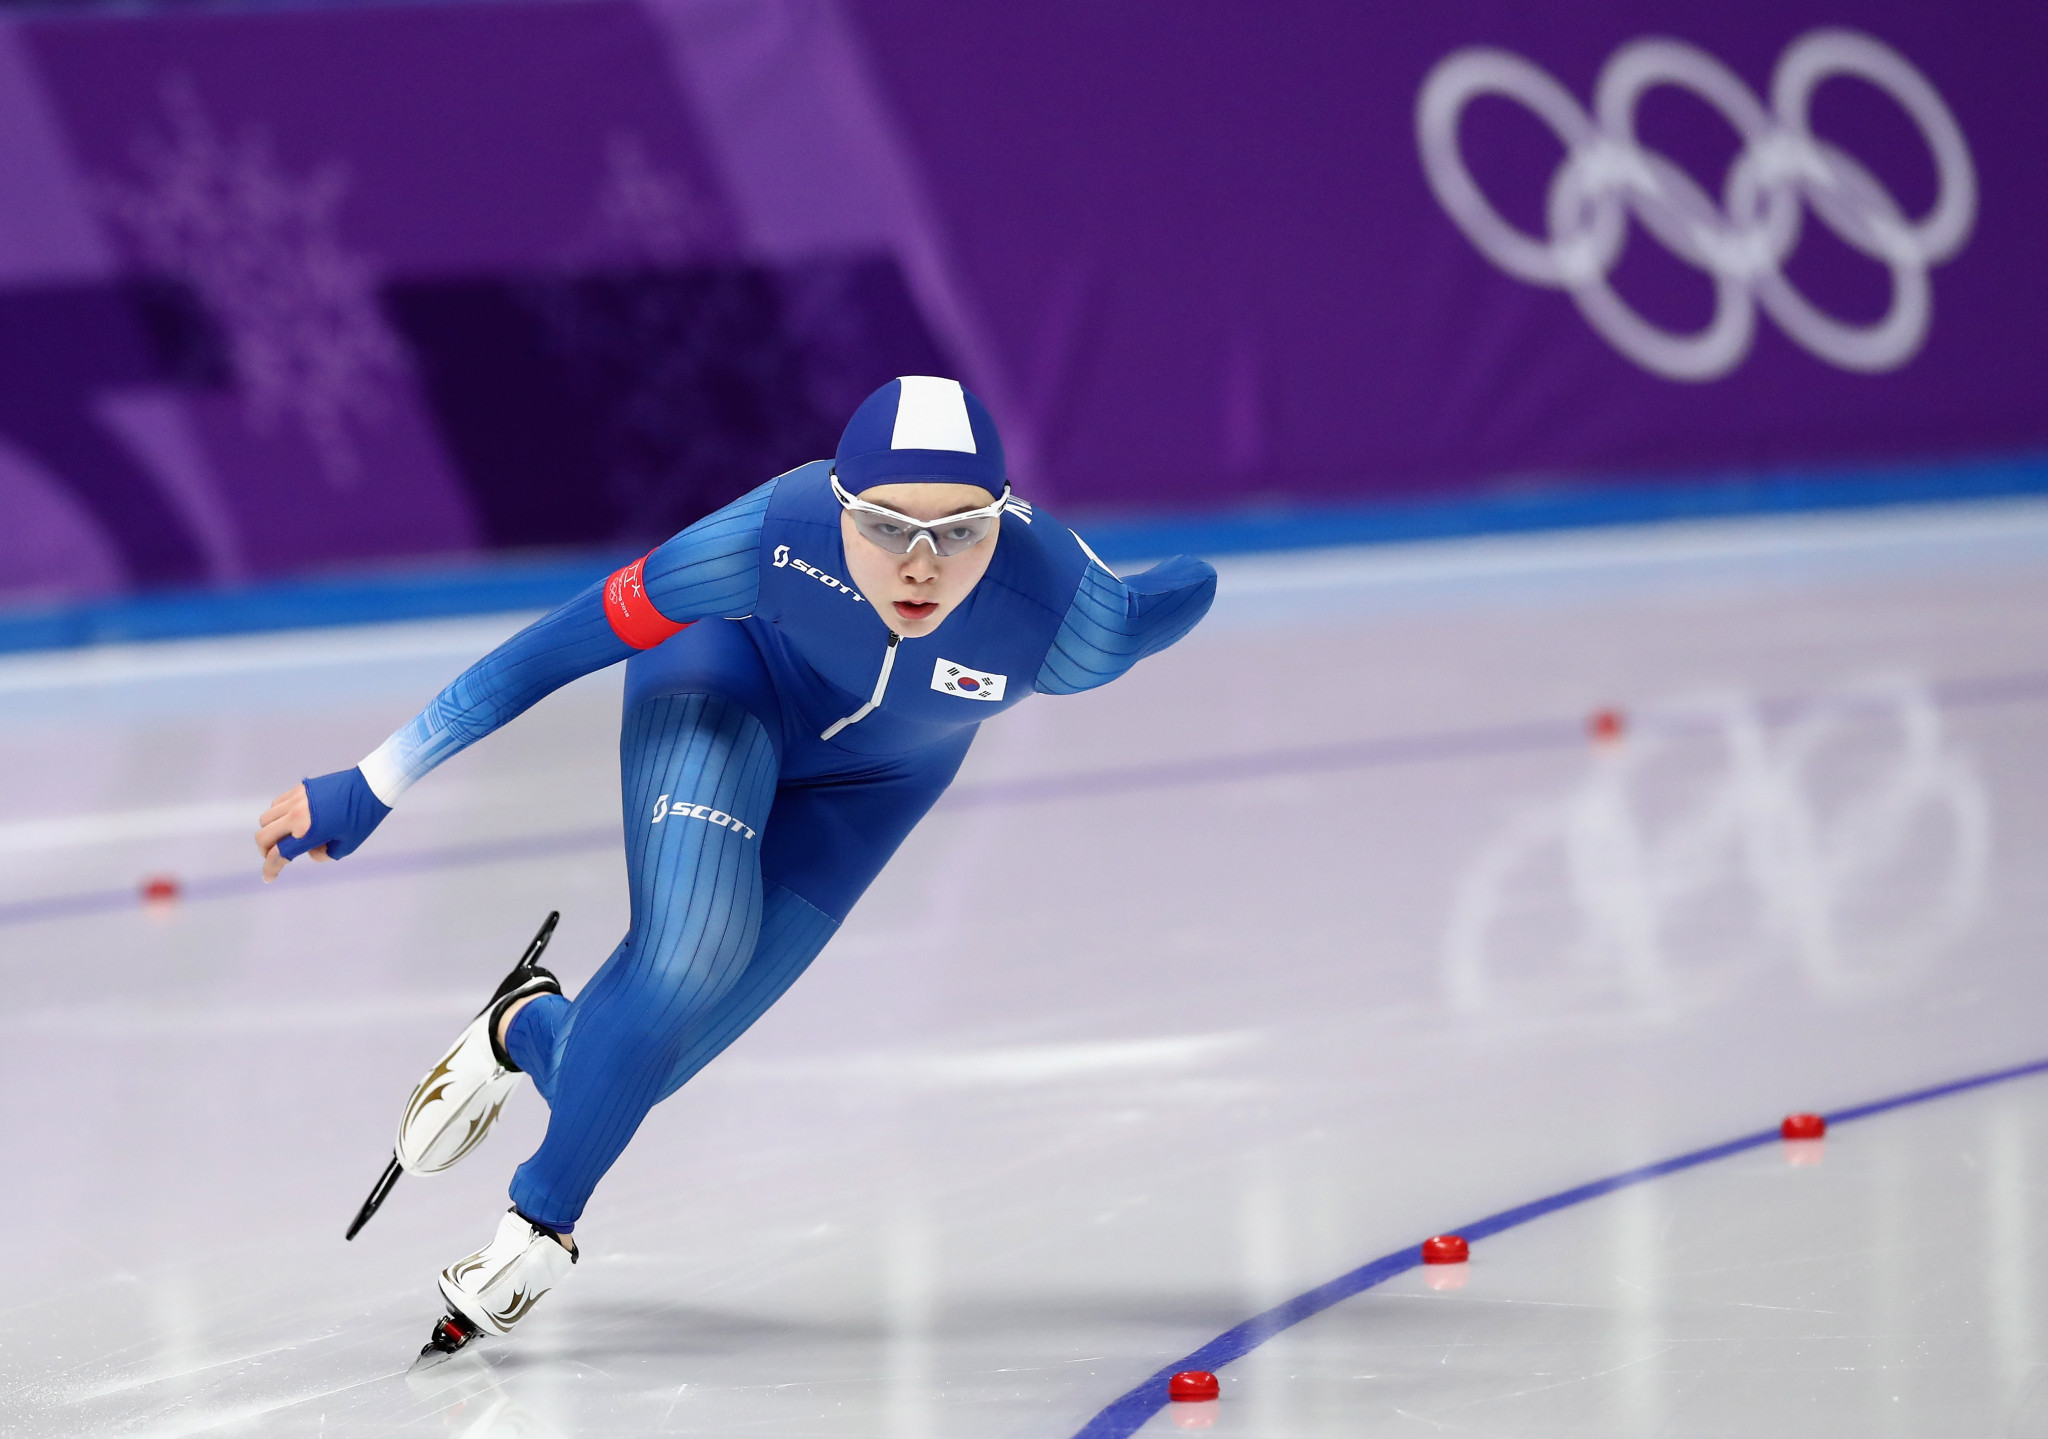 Over half a million people have signed a petition lodged with South Korea's Presidential Blue House calling on two members of the host nation's speed skating team pursuit trio to be banned for their conduct towards Noh Seon-yeong ©Getty Images